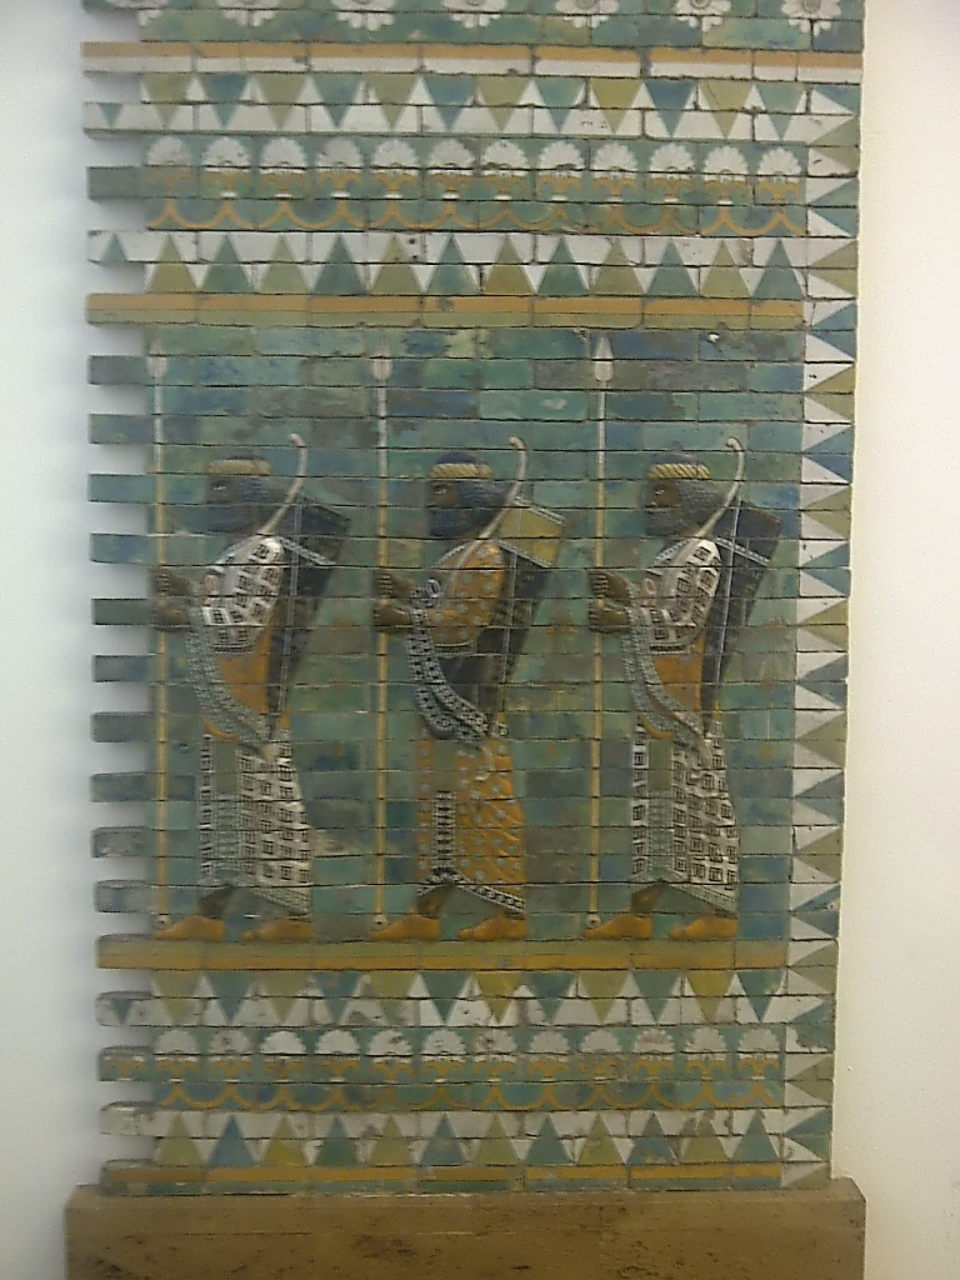 Pergamon Museum, Eternal Soldiers, large